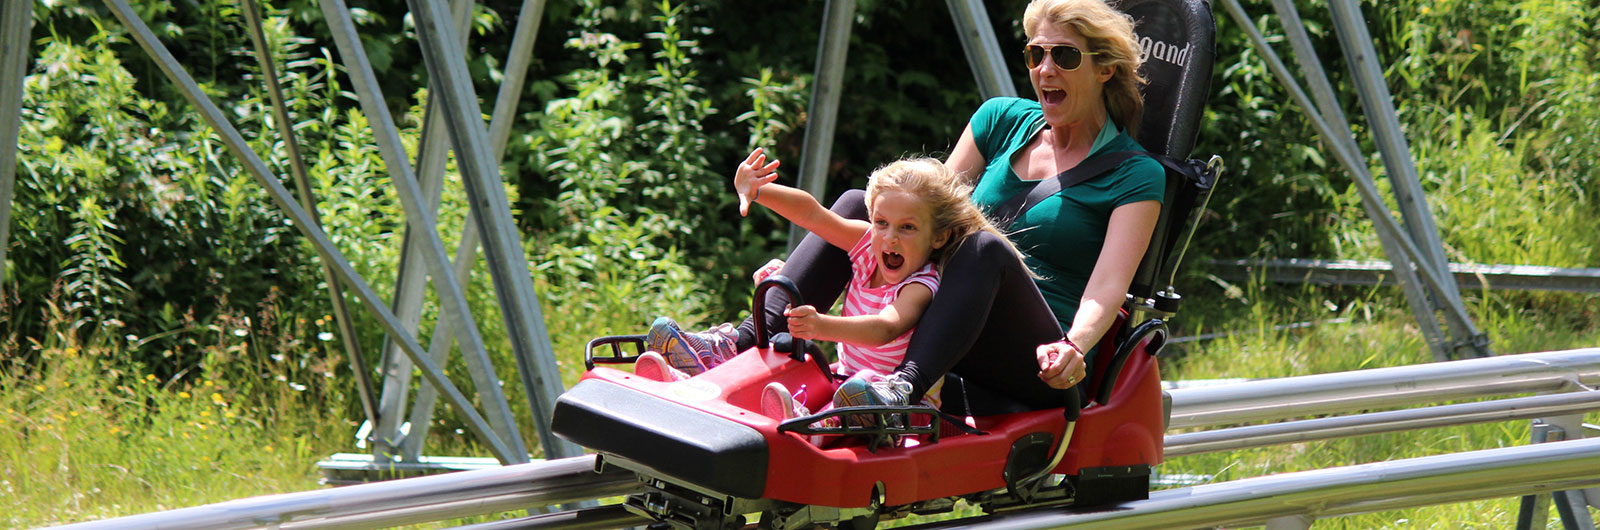 mother and daughter on mountain coaster in summer